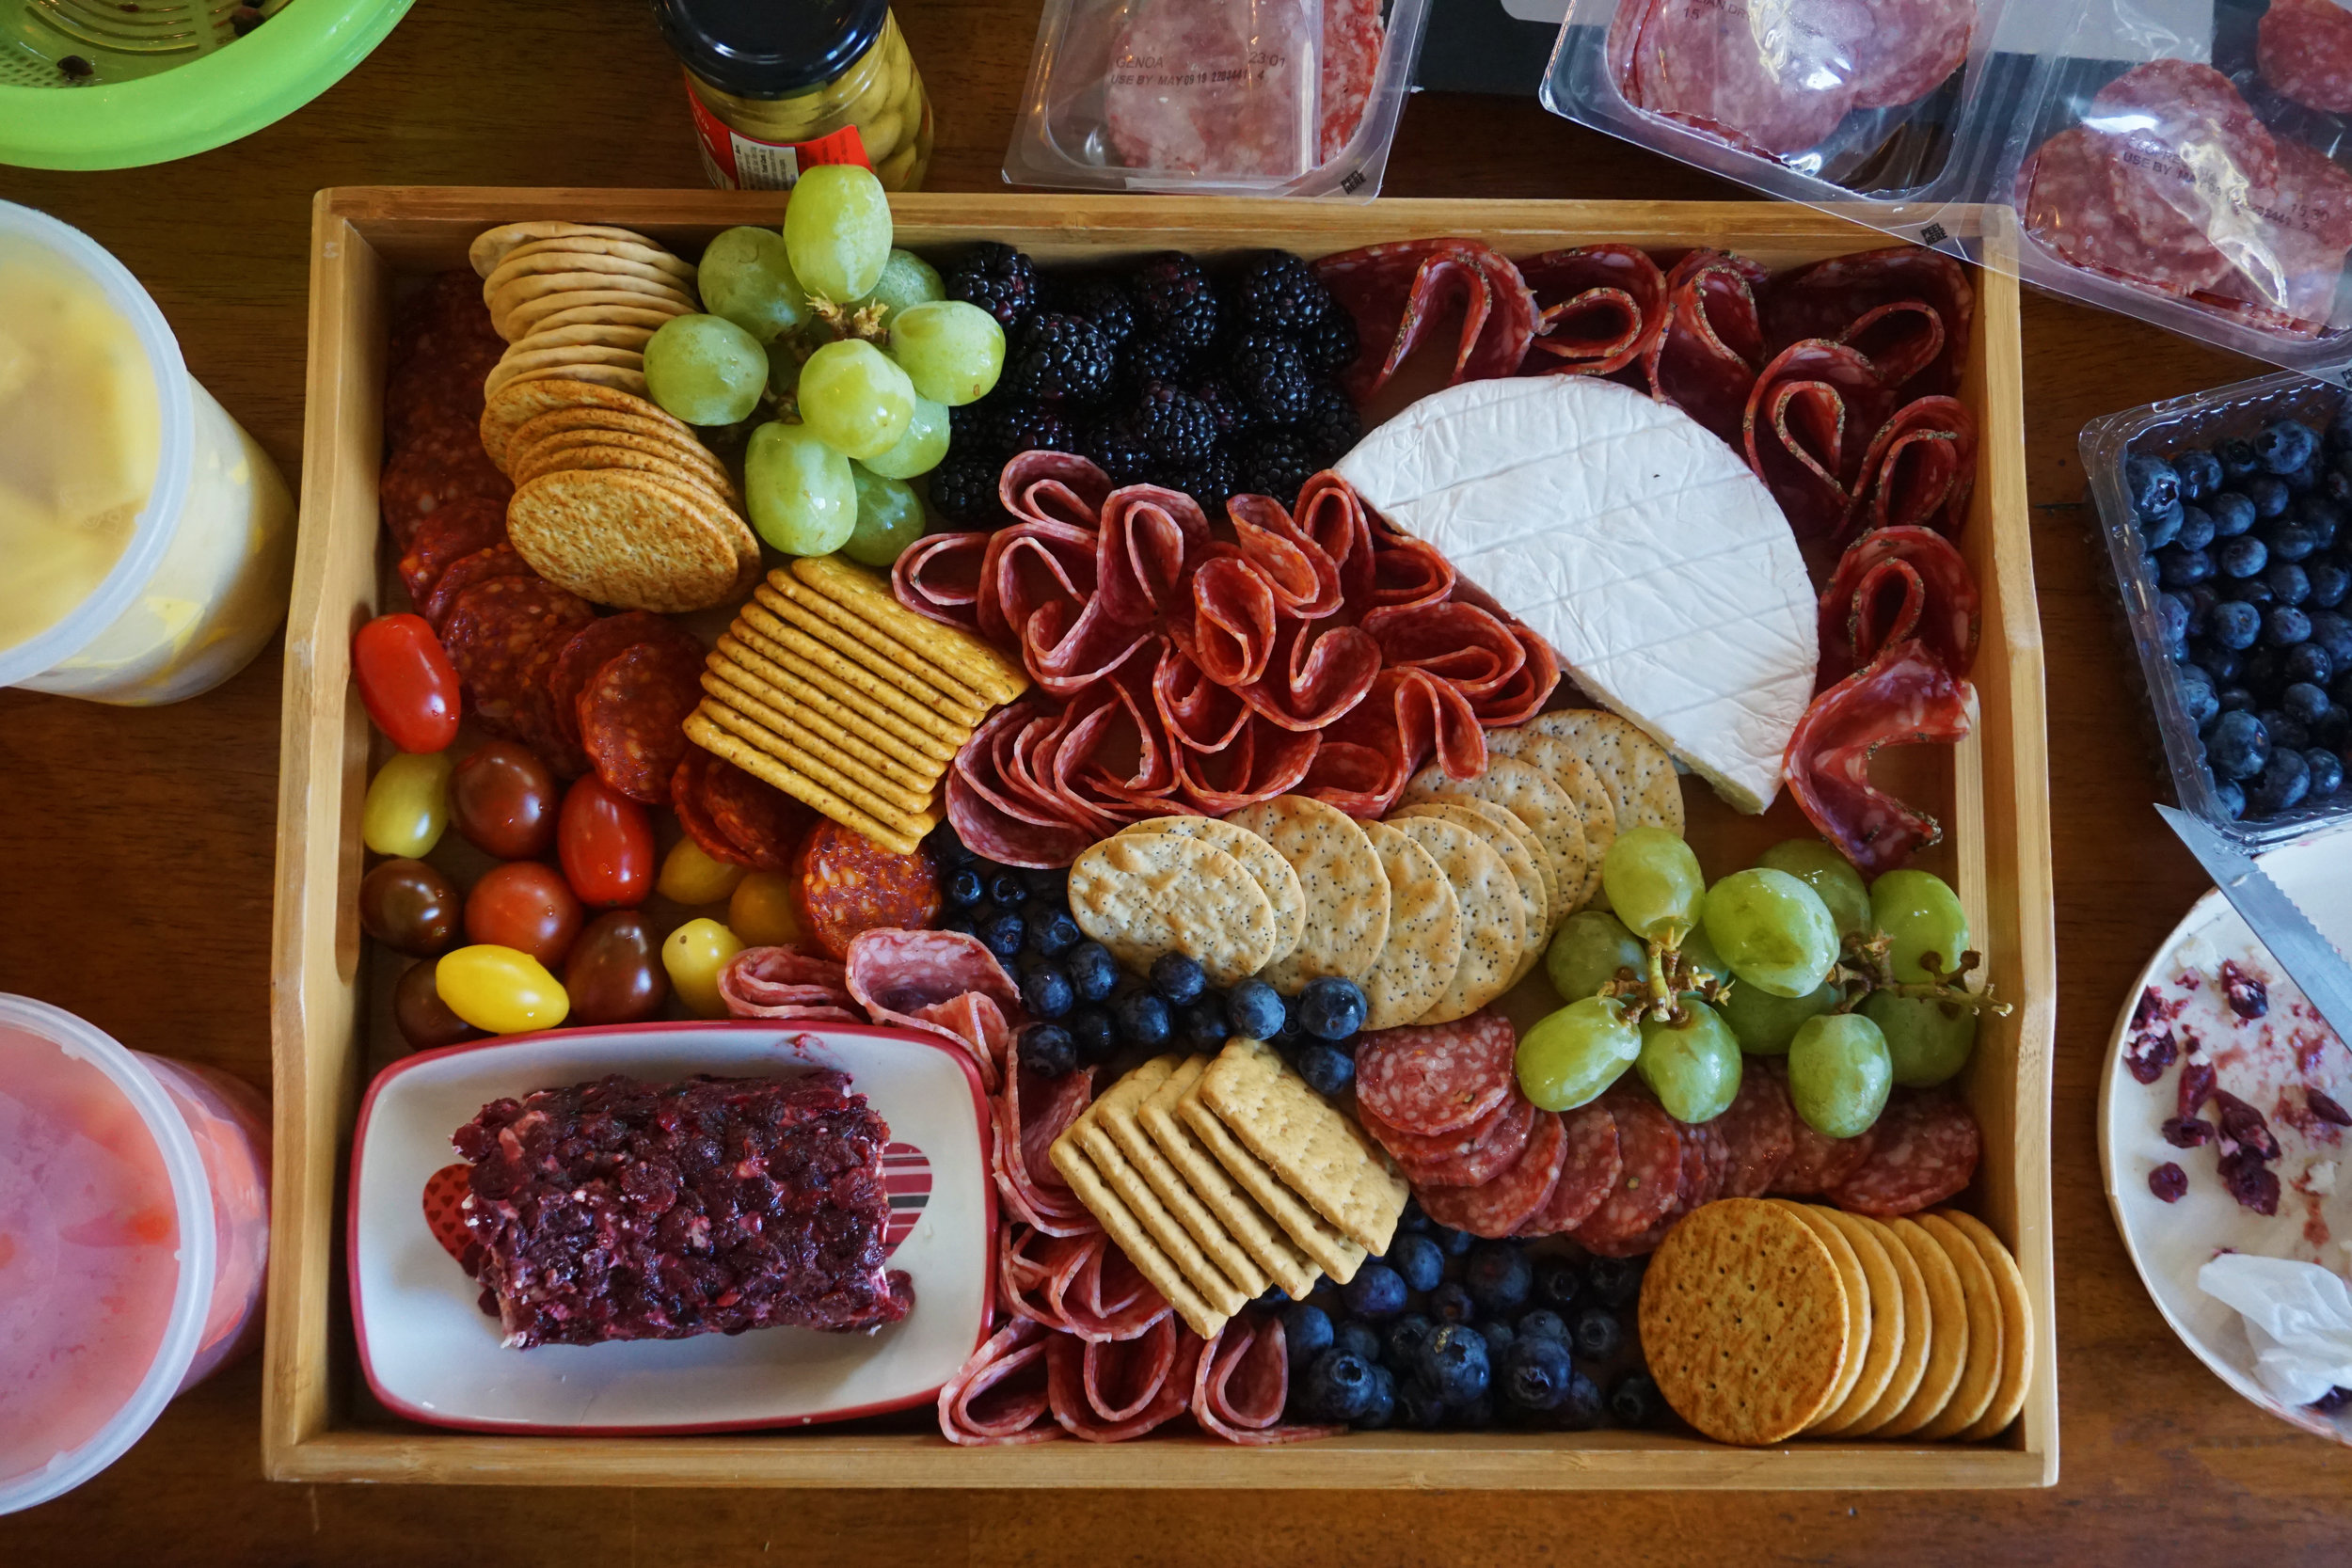 Charcuterie styling by Marisa